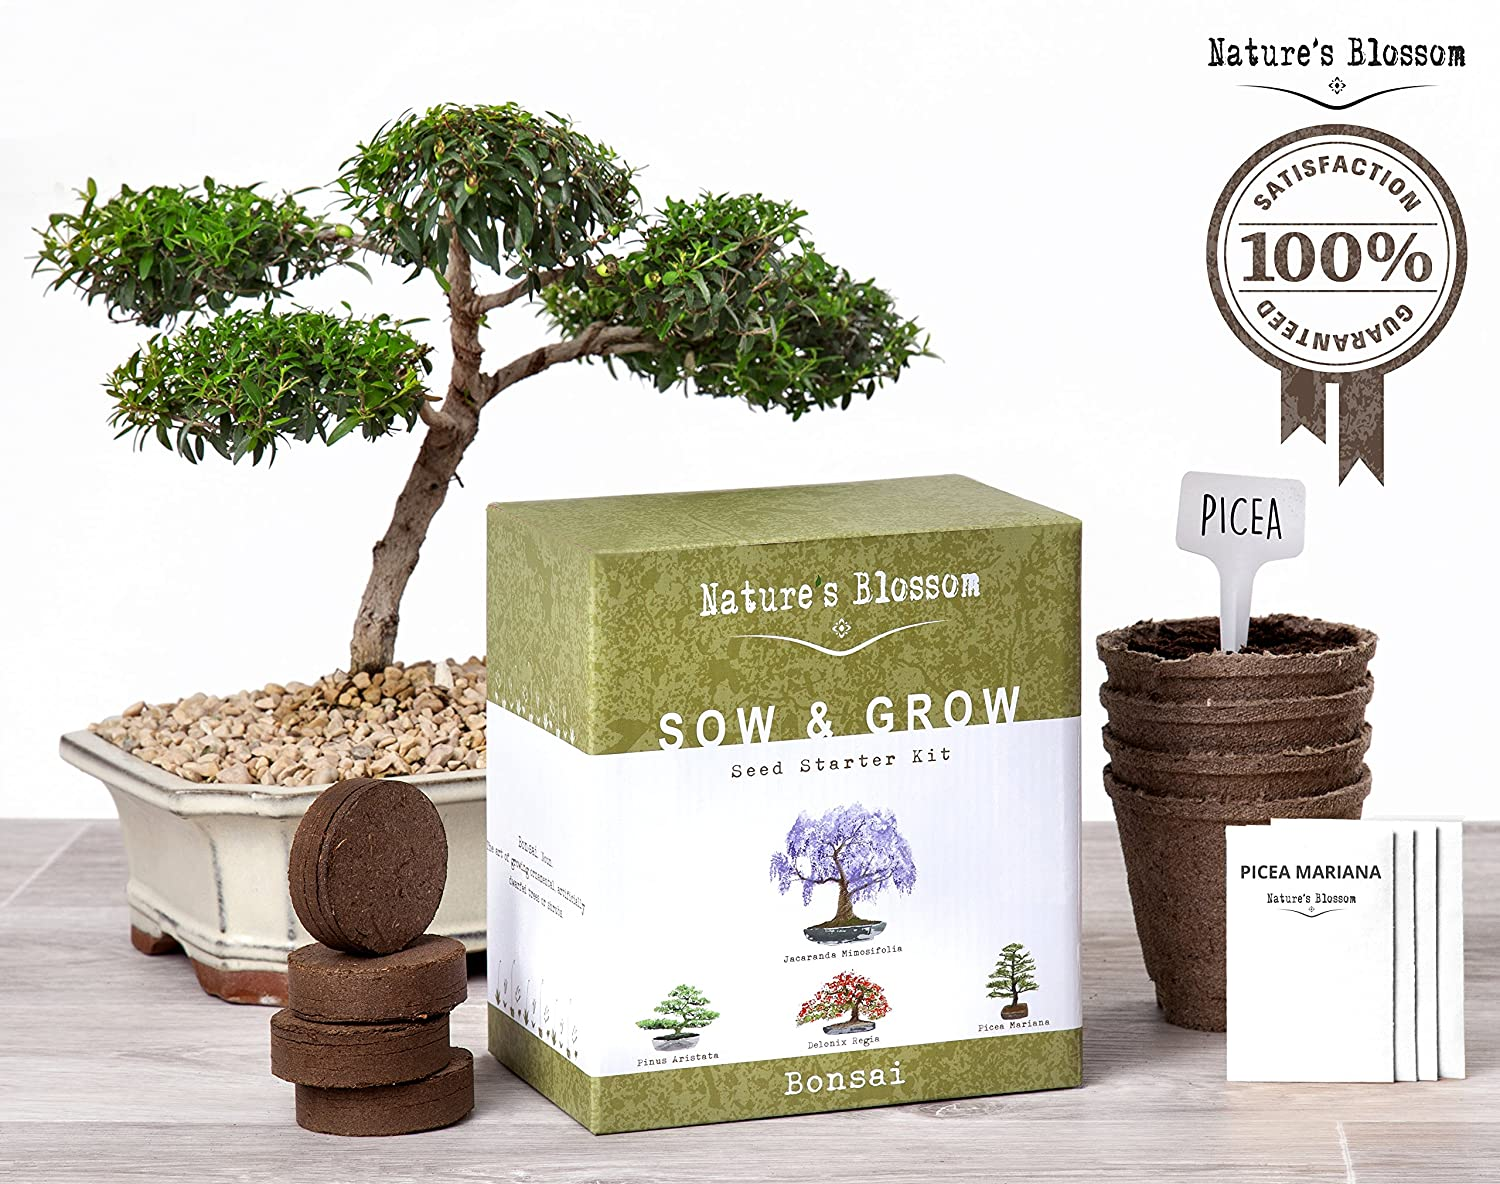 Best Selling, Grow 4 Bonsai Trees with Nature's Blossom Growing Kit – Soil, Pots & Tree Seeds Included.